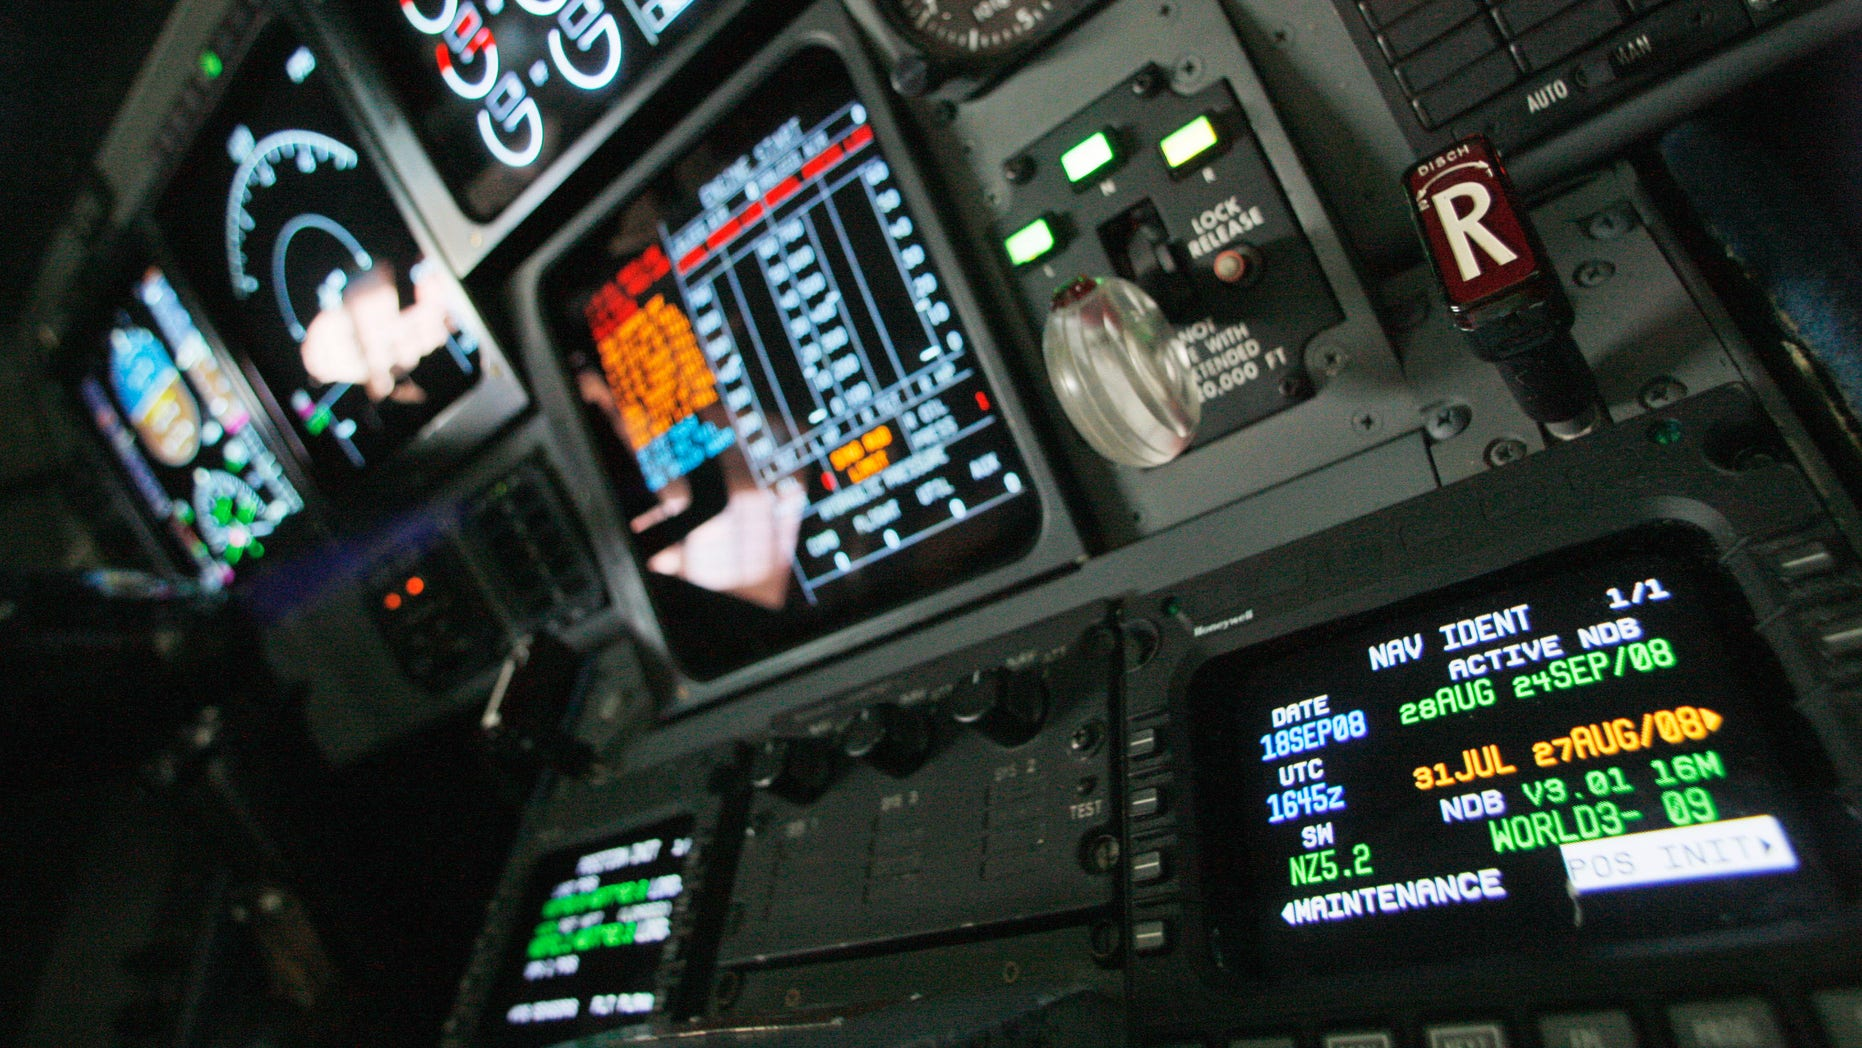 In this Sept. 18, 2008 file photo, navigation controls are seen in the cockpit of a FAA Gulfstream jet at a hangar at Washington's Reagan National Airport.